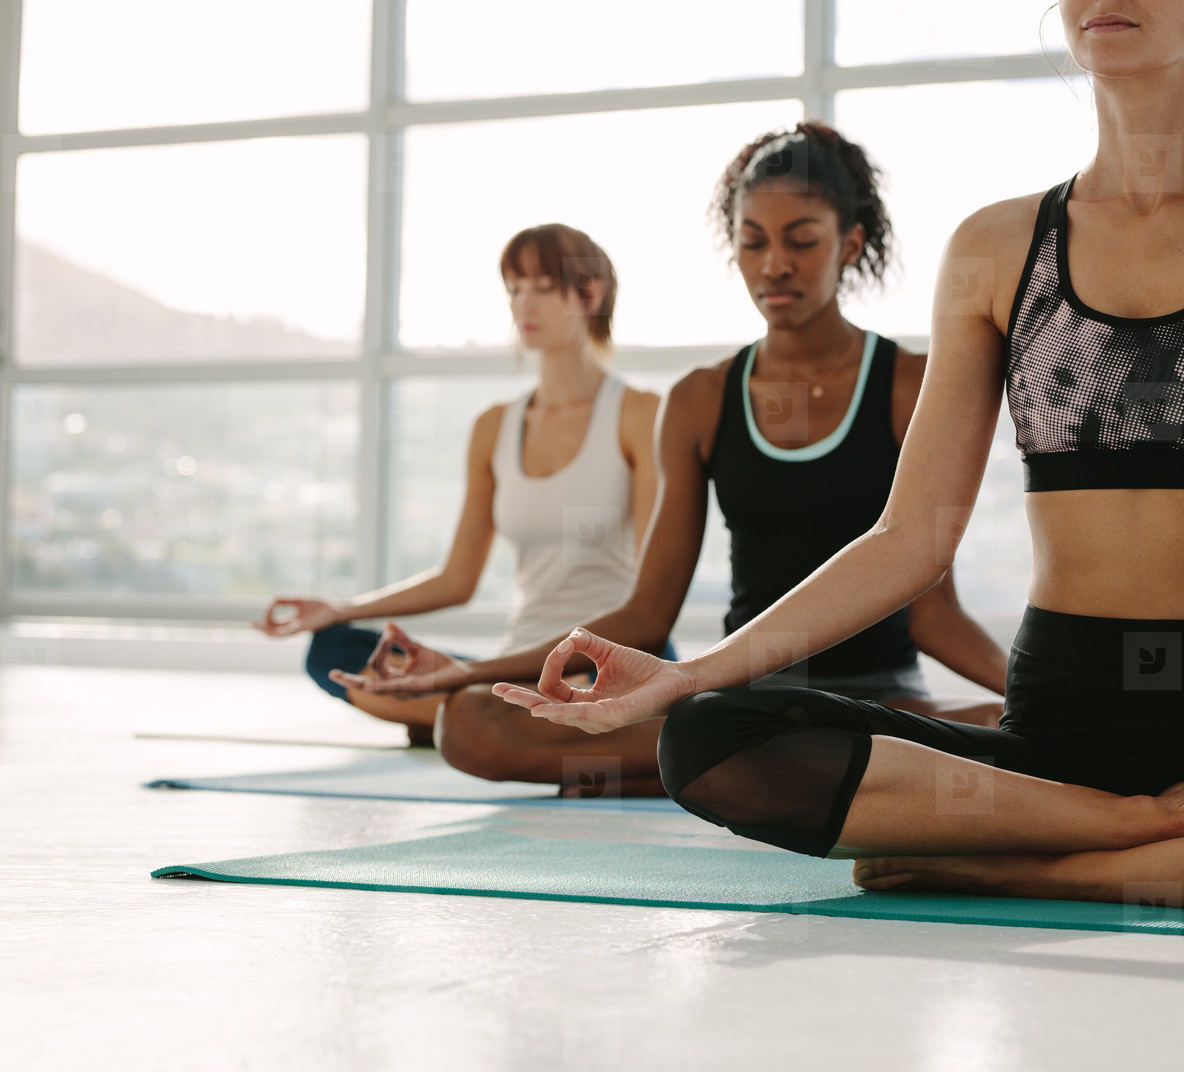 Women meditating in fitness studio